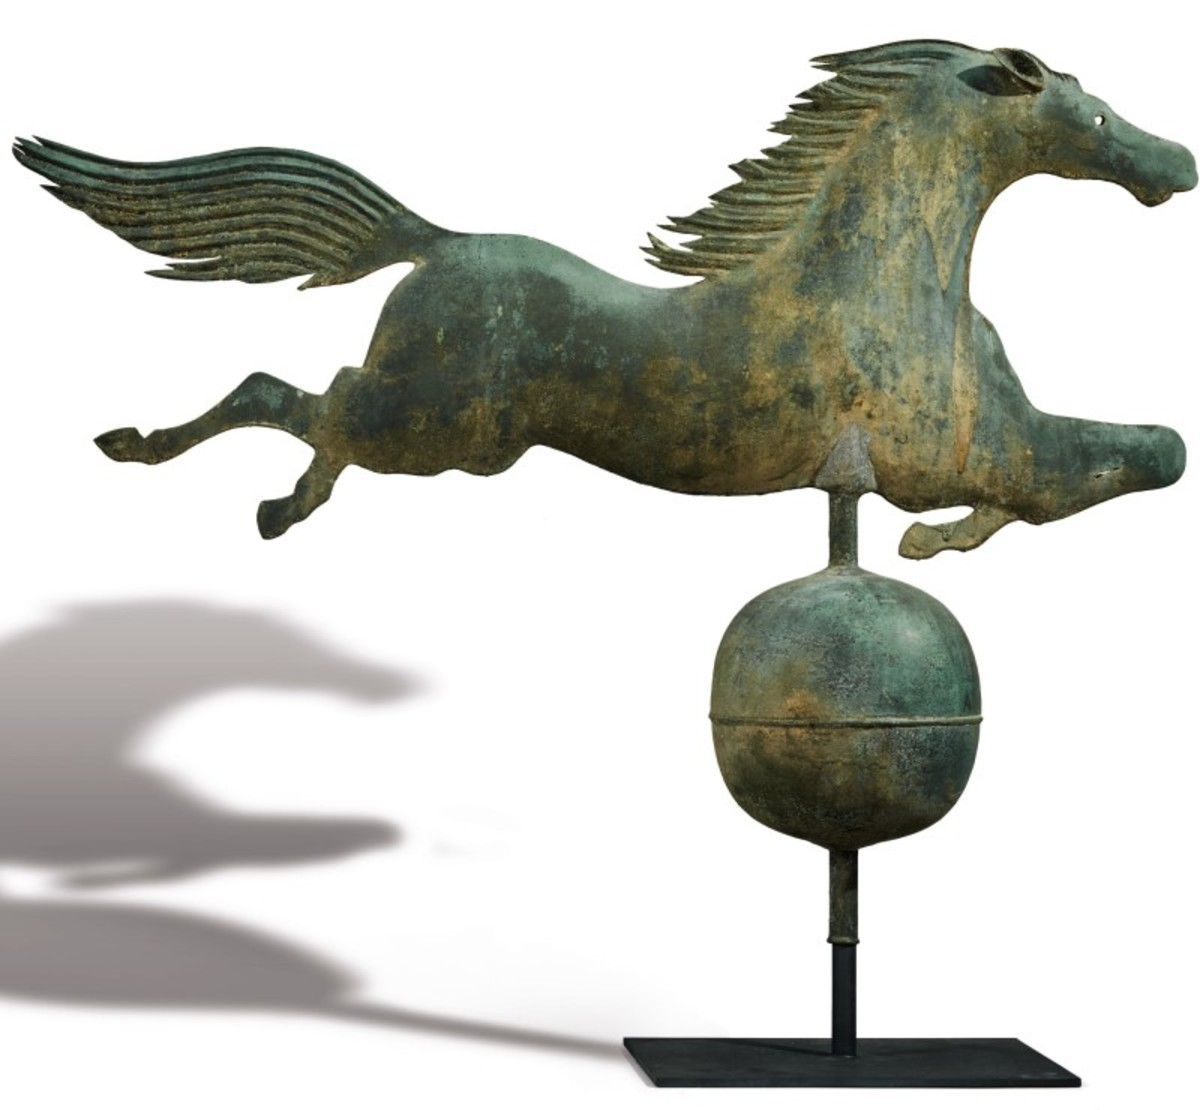 Exceptional molded copper Leaping Horse Weathervane, Boston, ca. 1860. Sold at auction for $150,000